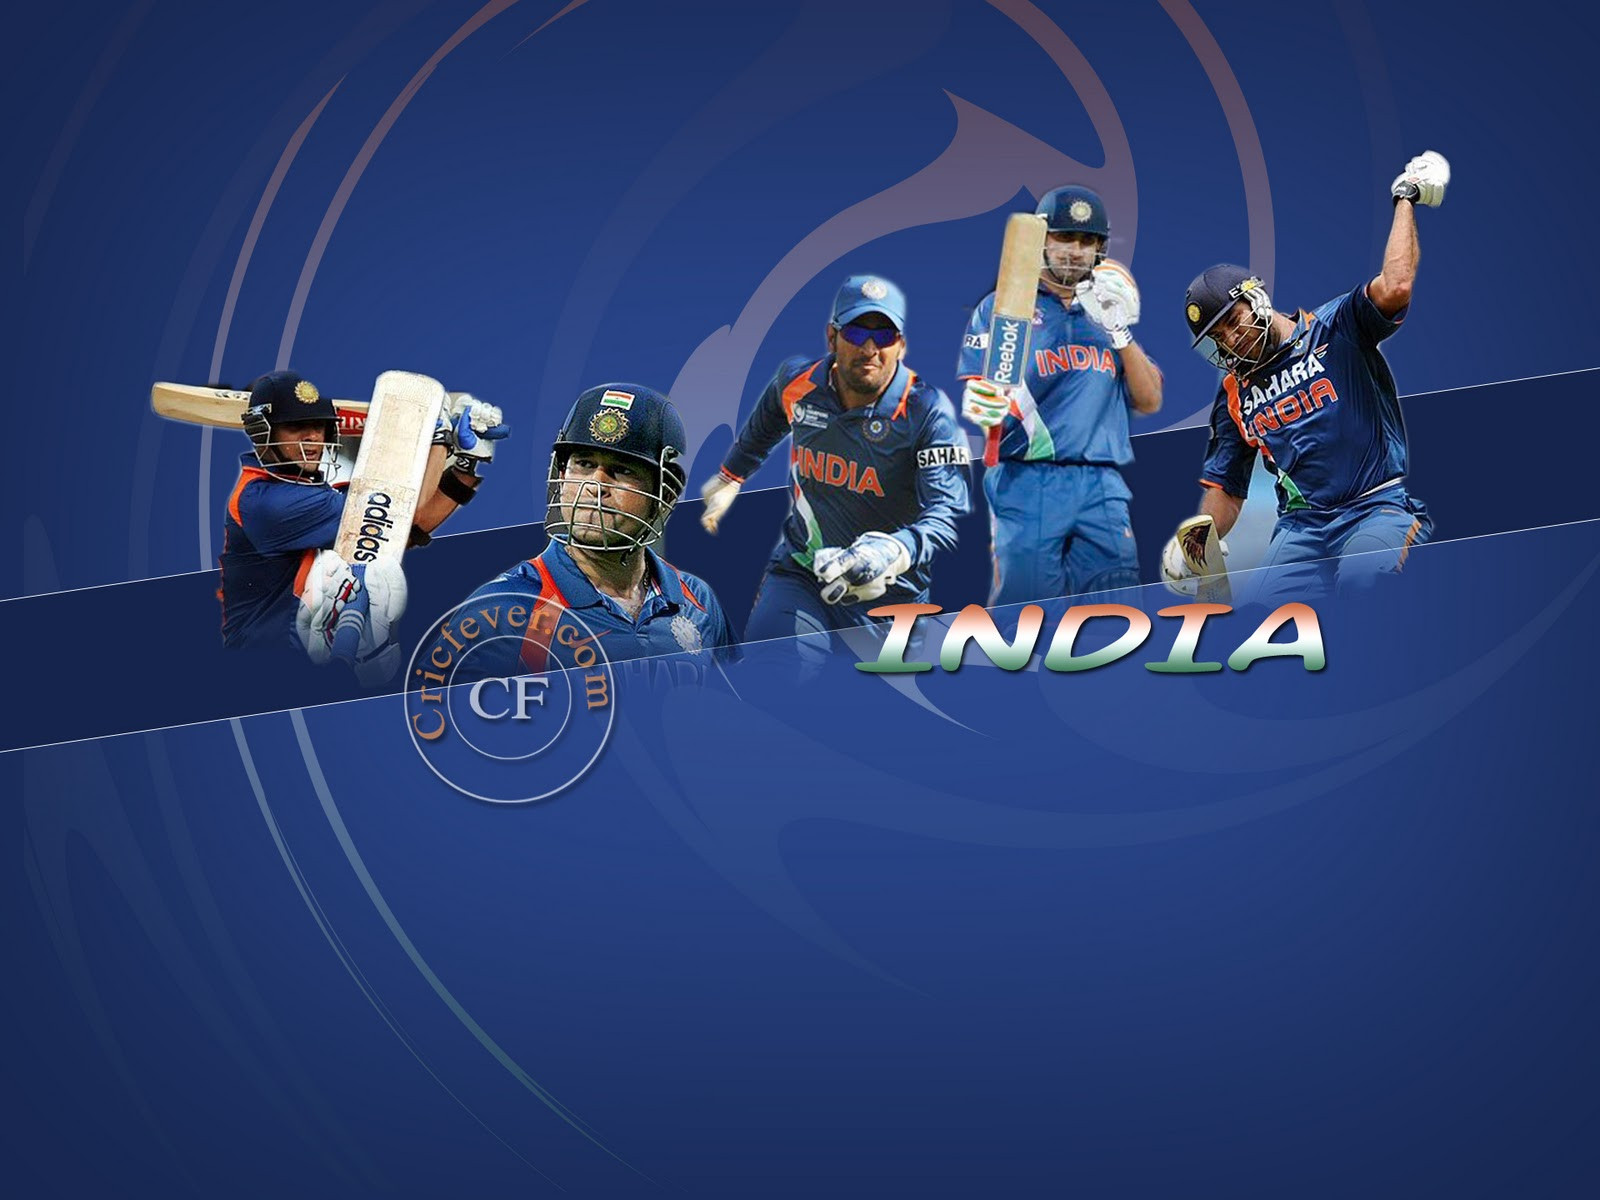 Cricket+world+cup+2011+india+wallpapers